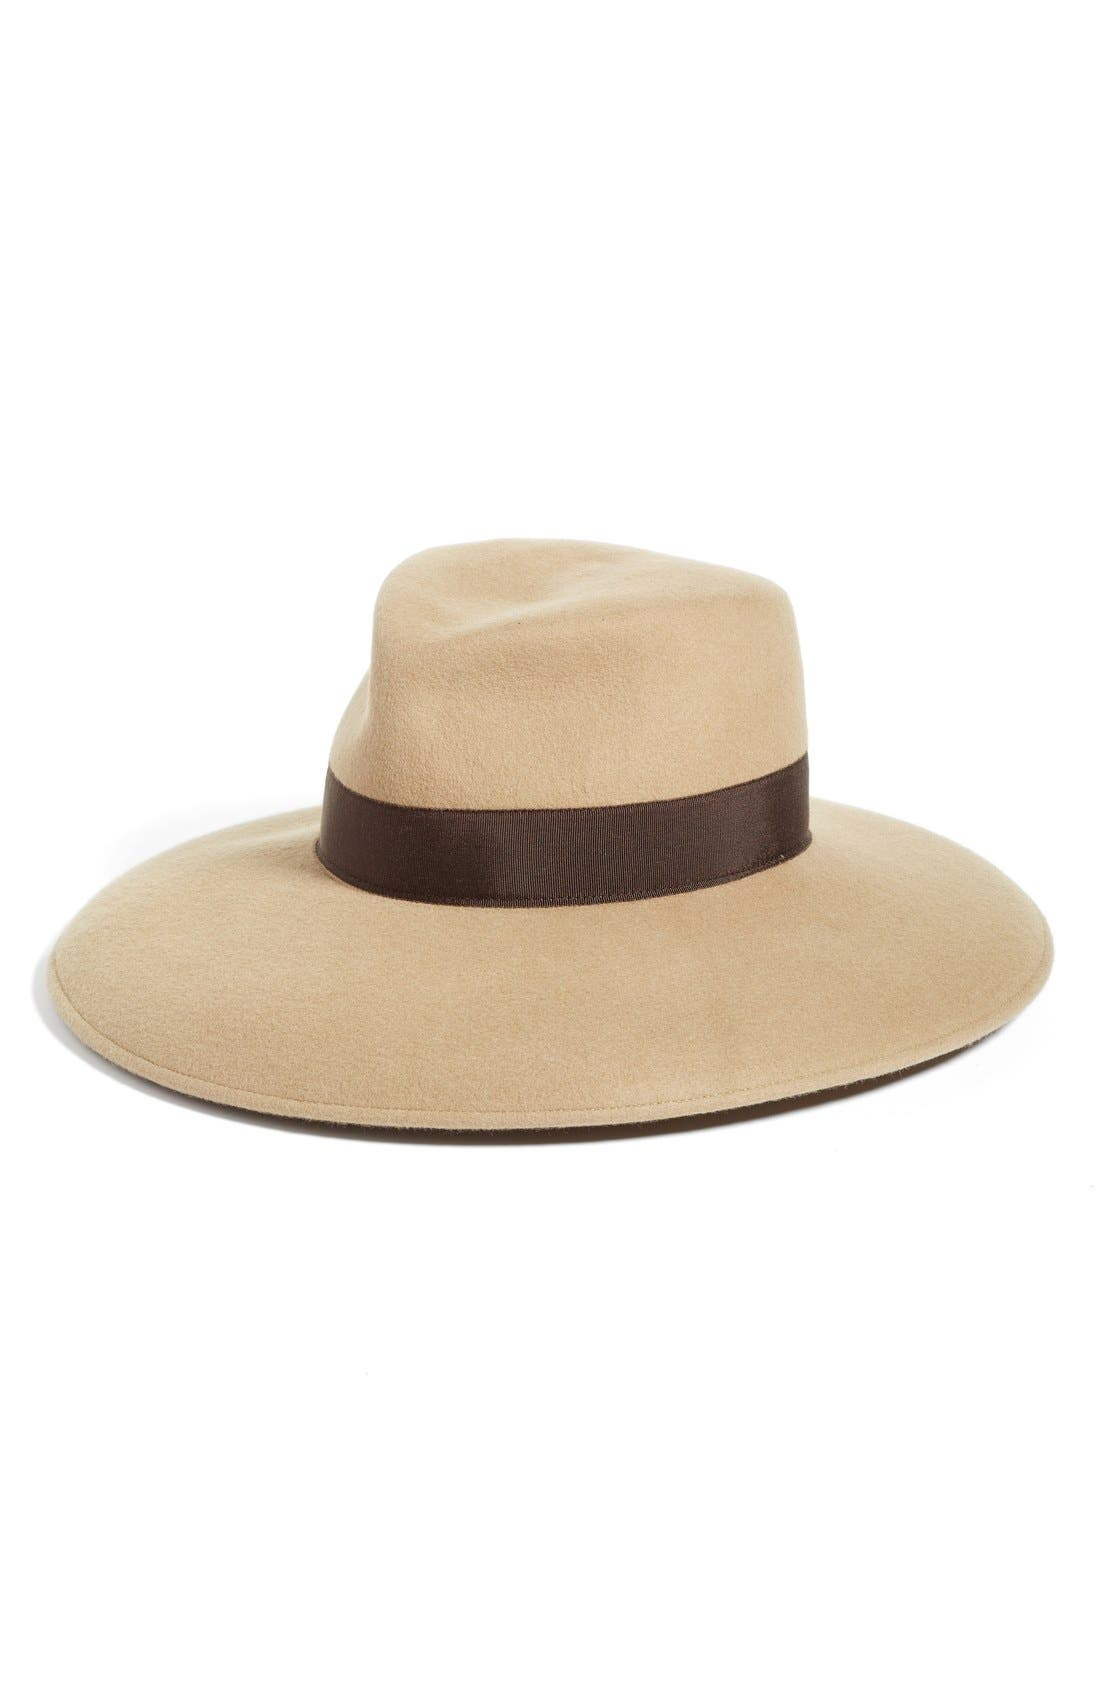 Eric Javits Camille Wool Floppy Hat